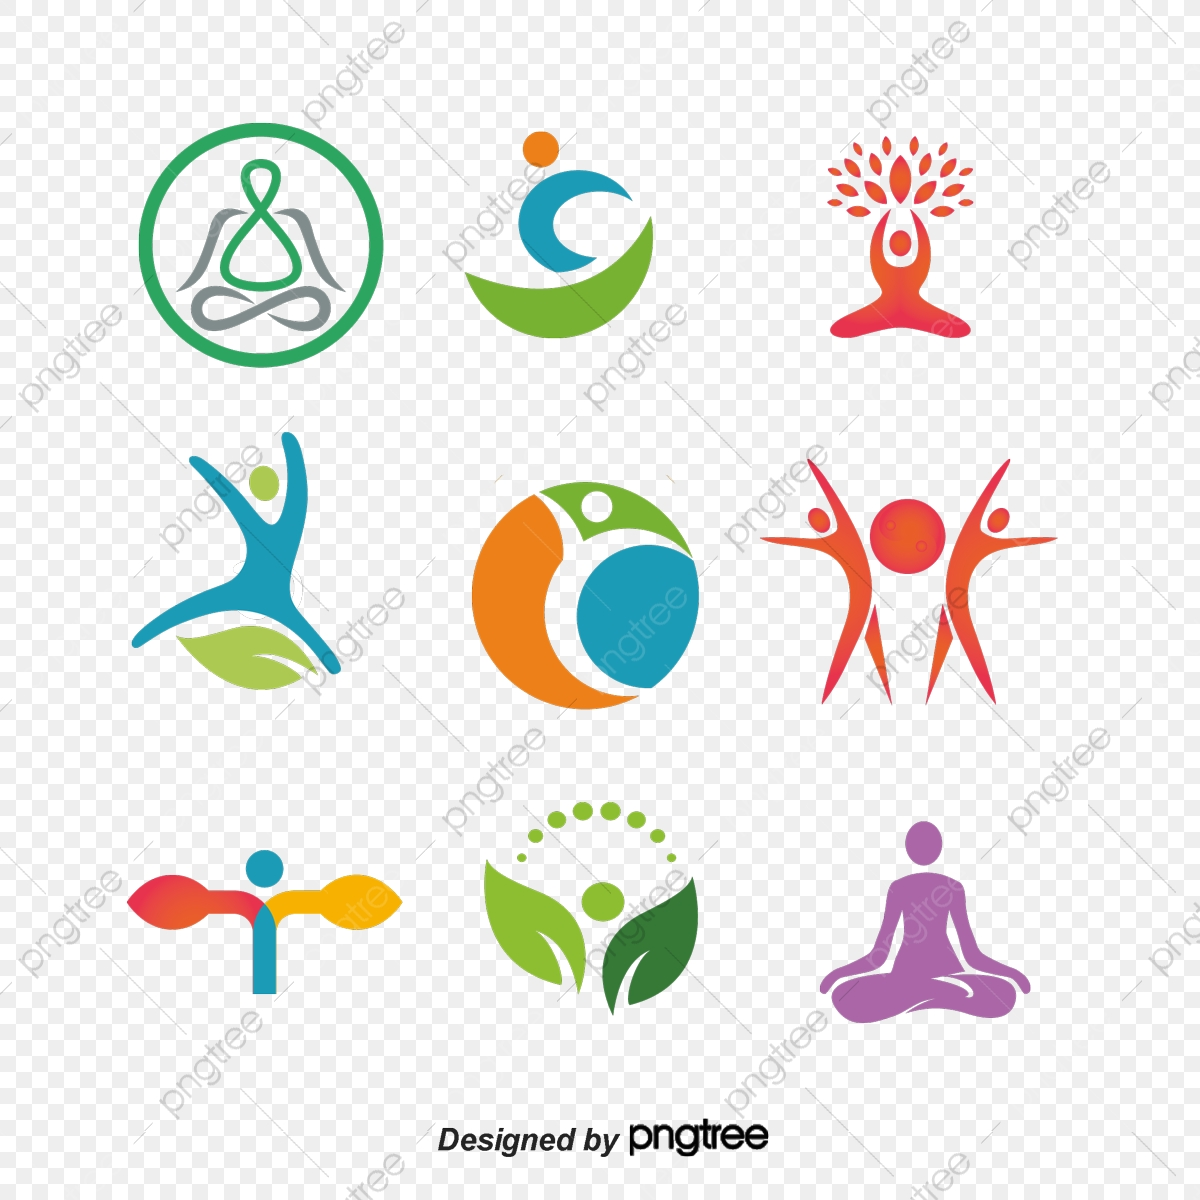 Yoga Logo Vector Material Yoga Vector Logo Vector Logo Mark Icon Png Transparent Clipart Image And Psd File For Free Download